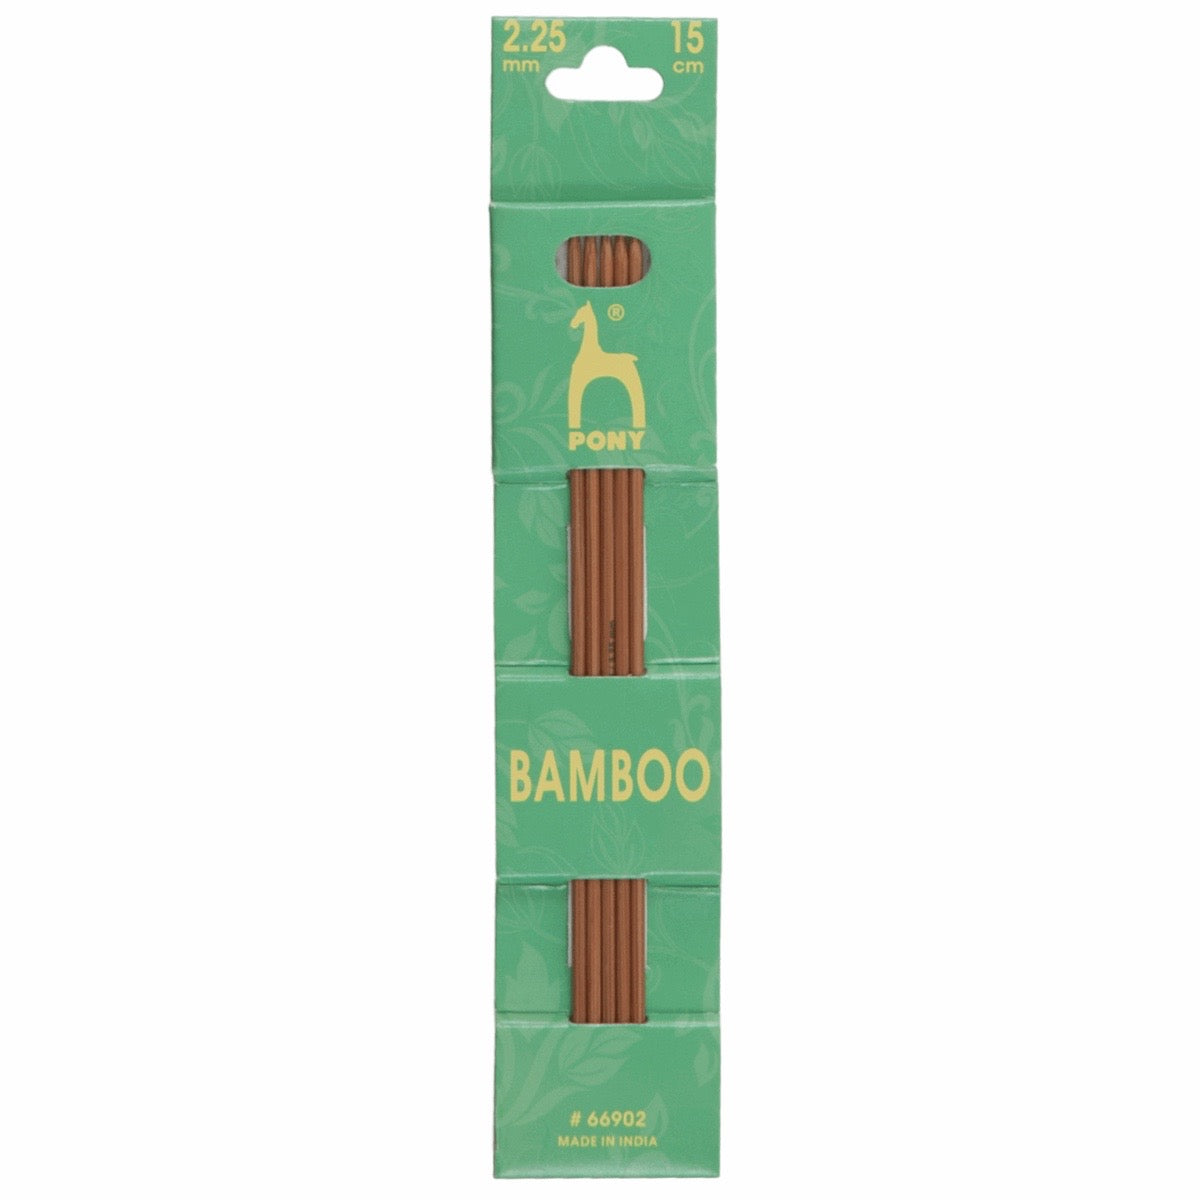 Pony Bamboo 15cm 2.25mm Double Ended Knitting Pins.  Set of 5